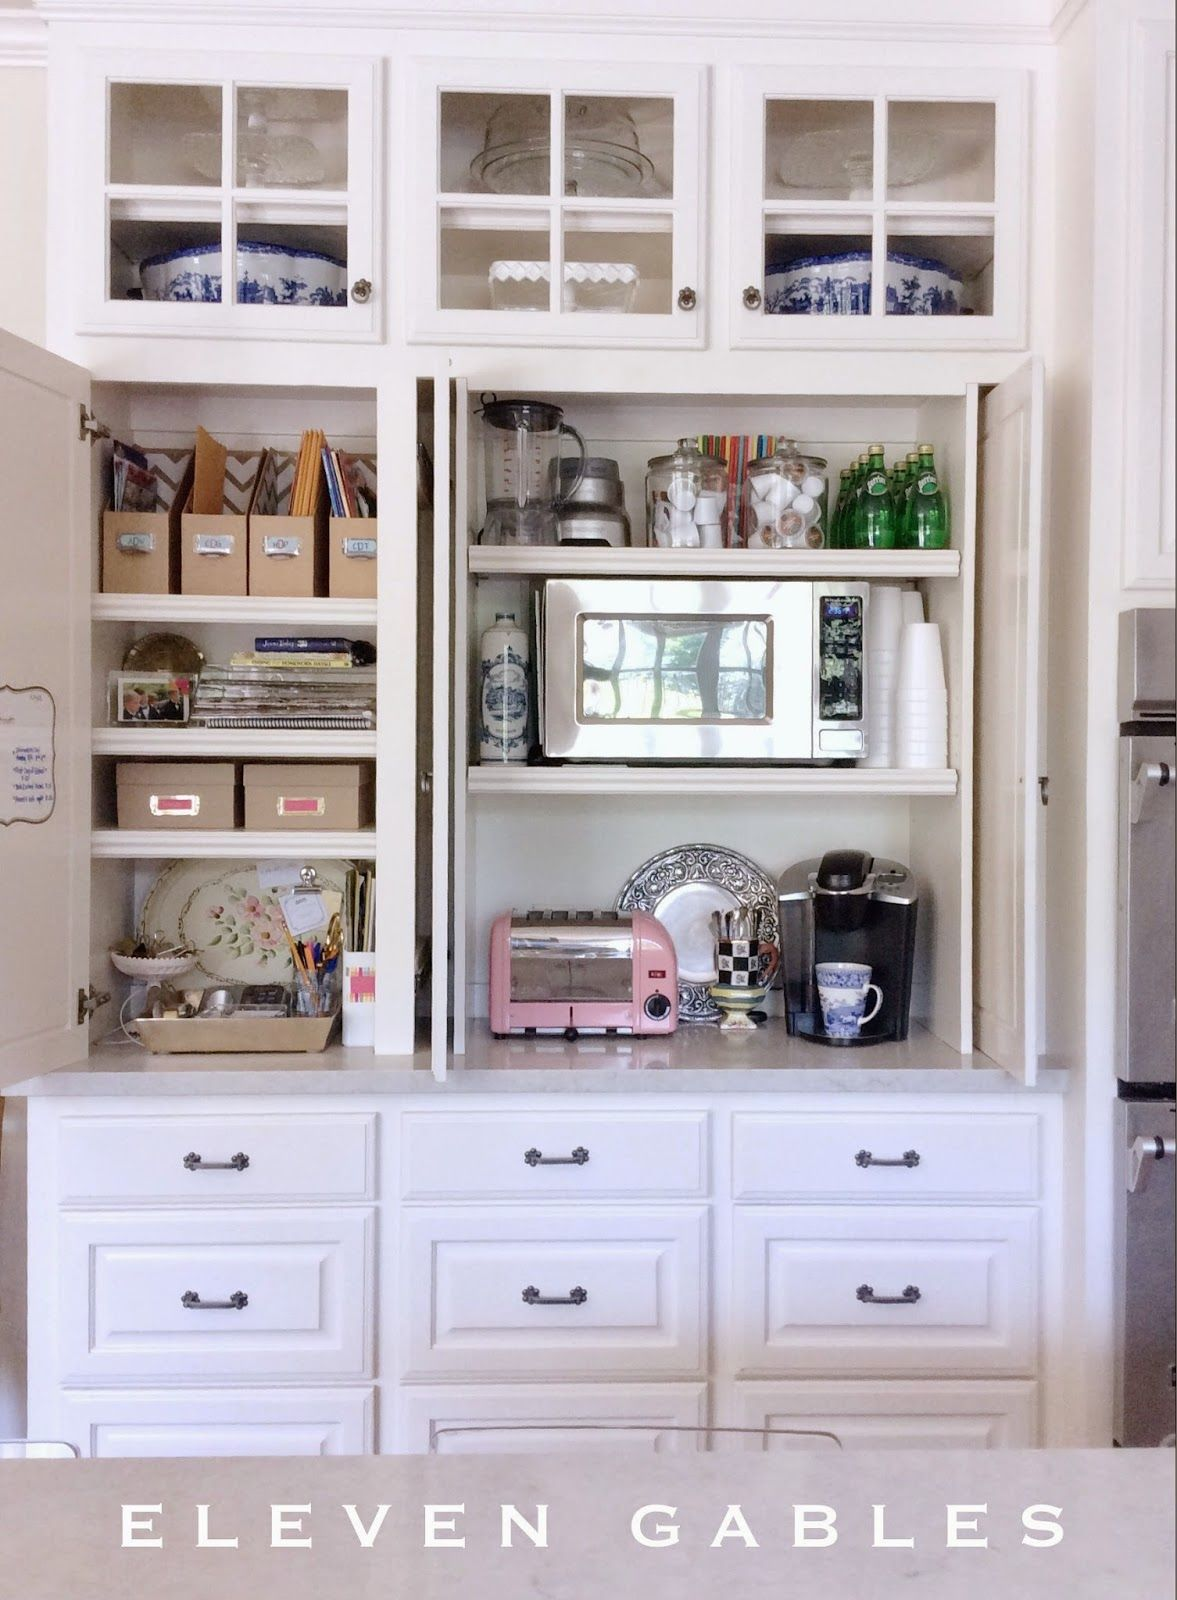 kitchen appliance shelf console hidden cabinet and desk command center in the